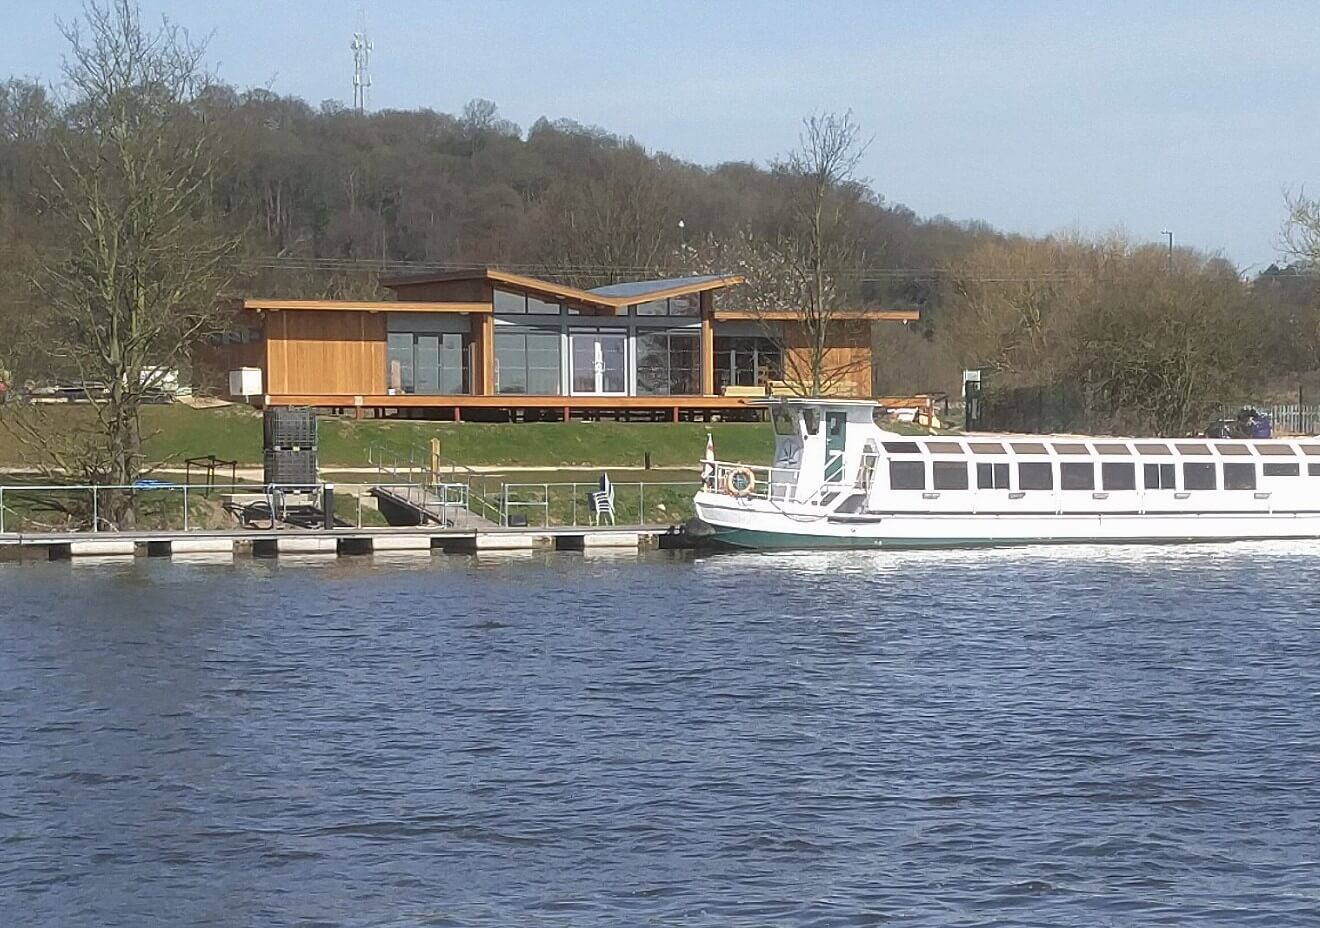 A view of the Princess River Cruises facilities building from accross the river